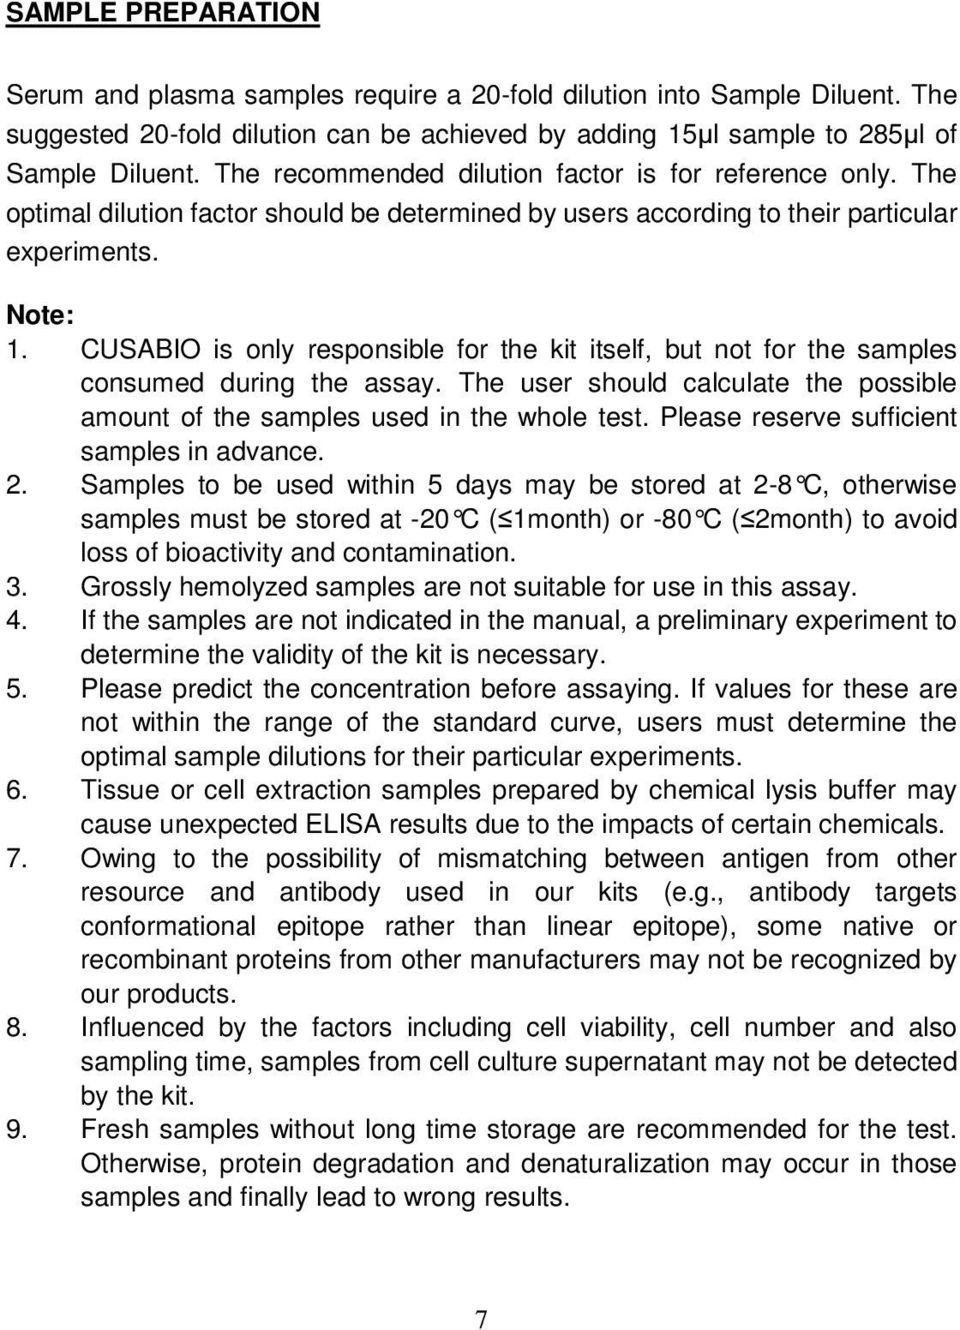 CUSABIO is only responsible for the kit itself, but not for the samples consumed during the assay. The user should calculate the possible amount of the samples used in the whole test.